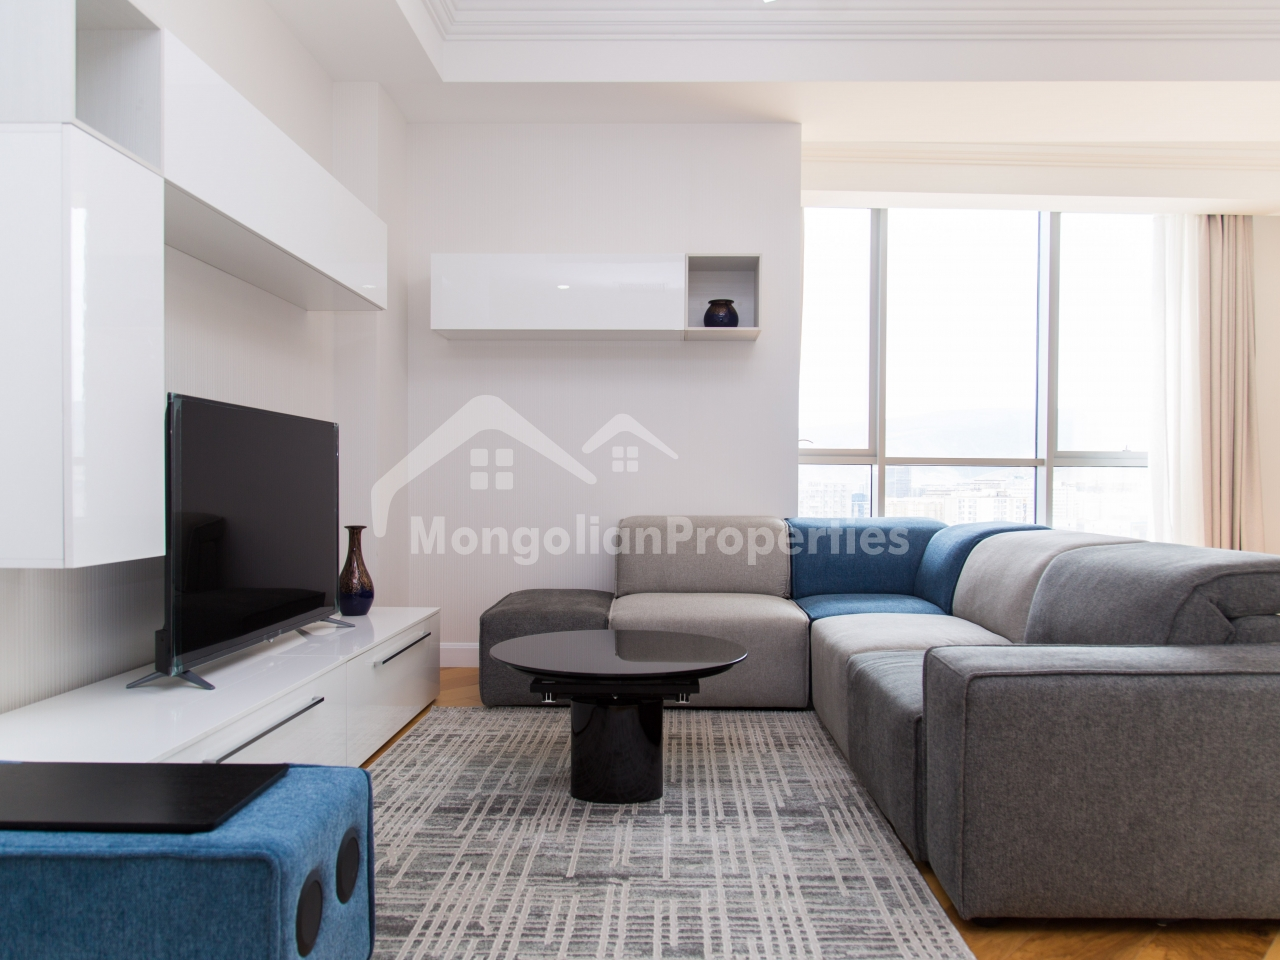 Great View, Brand New 2 bedroom apartment is for rent at the Olympic Residence